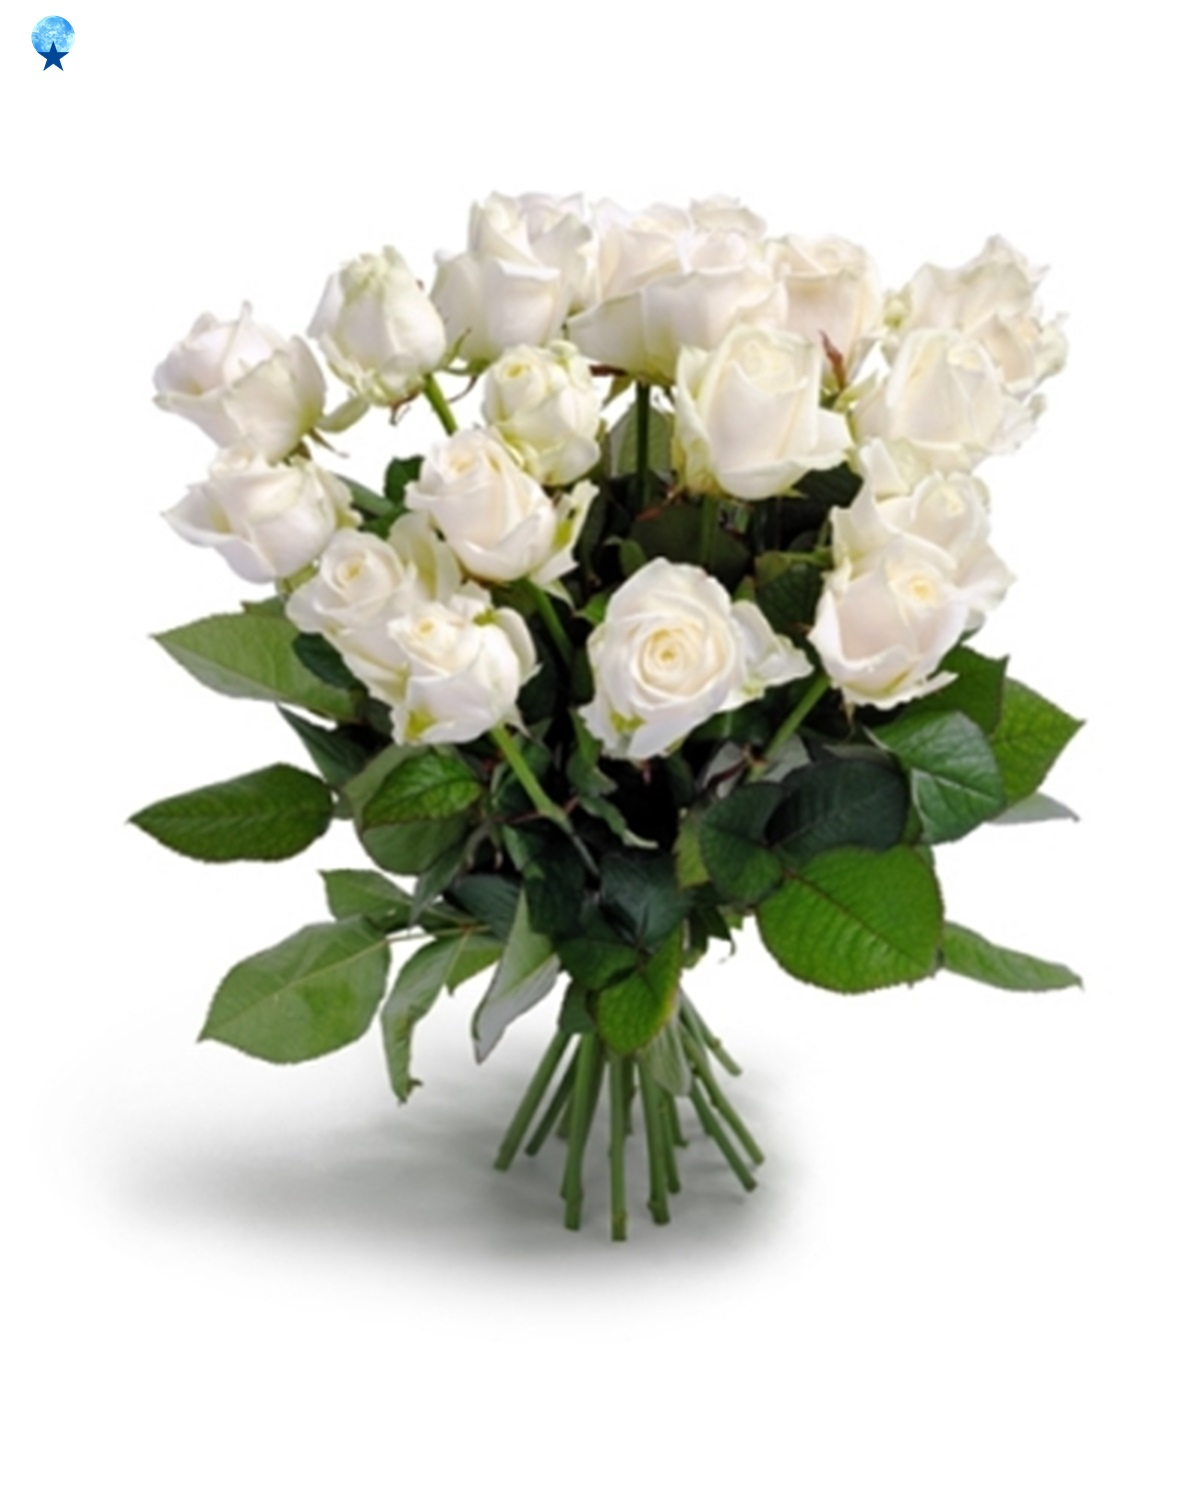 Hd flowers white roses flowers rose white bunch rose blooms white has ever been an image of purity of a world pristine and untarnished the significance of a cluster of sparkling white roses is honesty and profound mightylinksfo